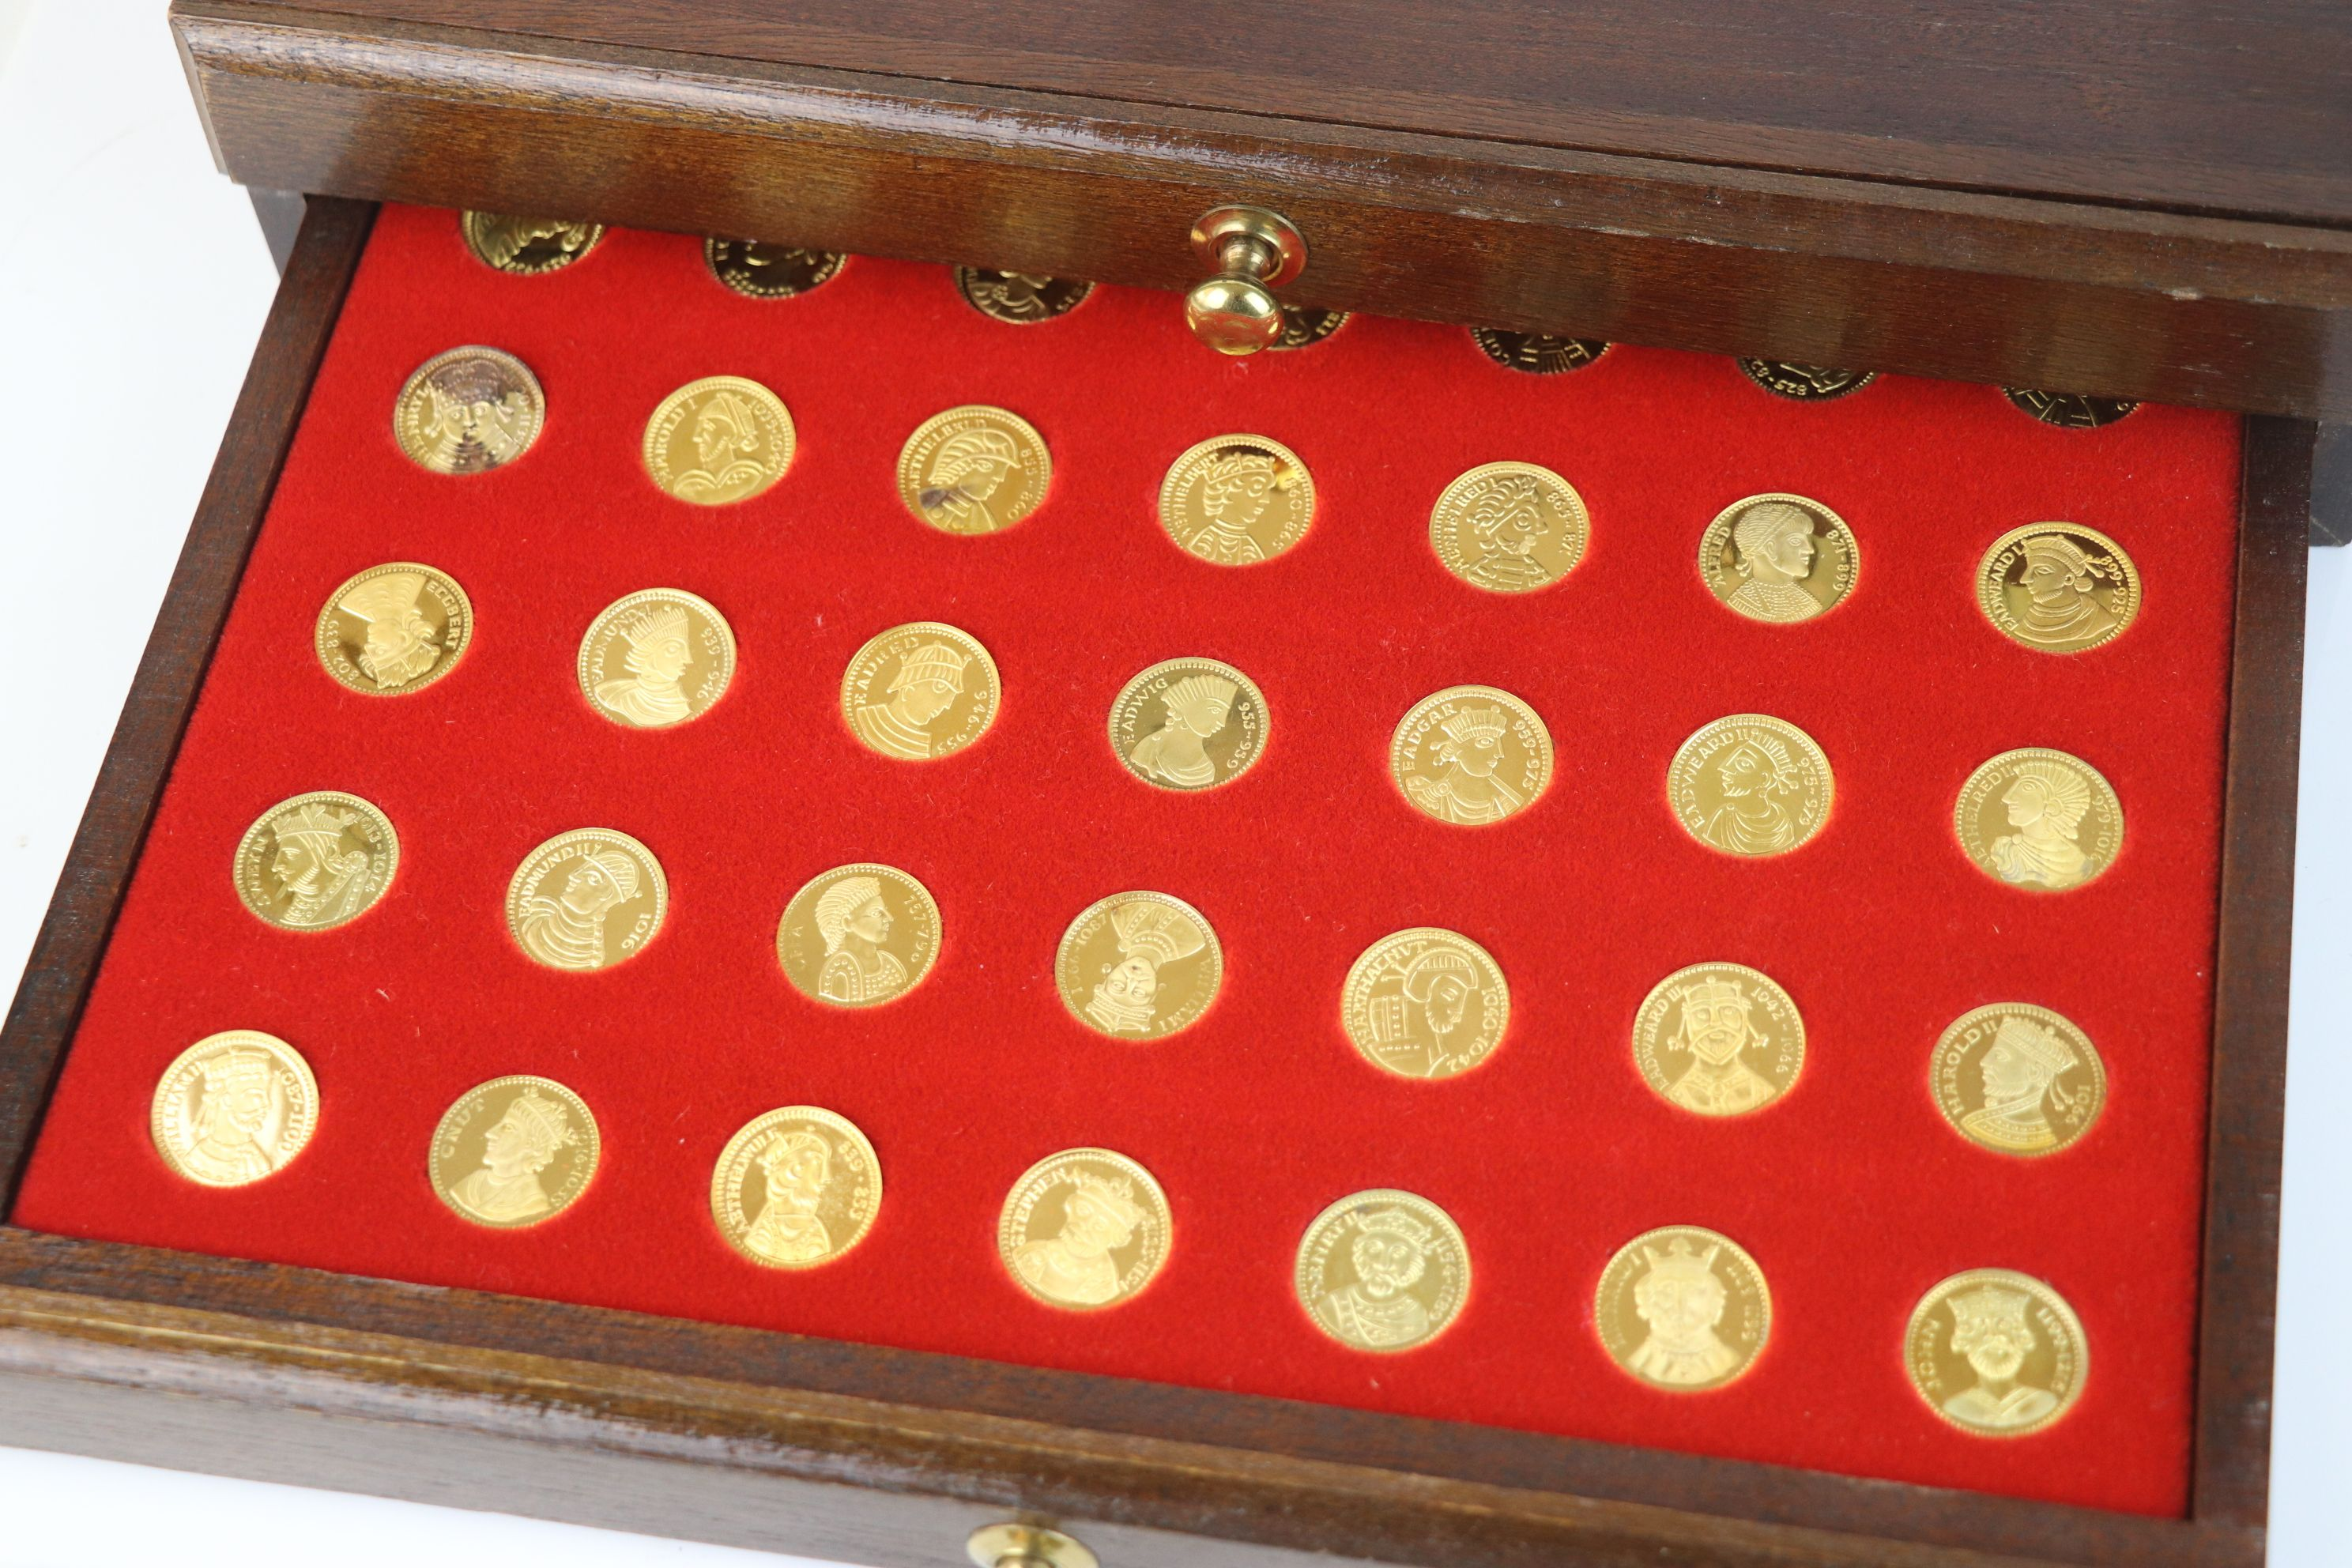 """A """"Our Royal Sovereigns"""" collection of seventy medals portraying the complete line of monarchs - Image 6 of 6"""